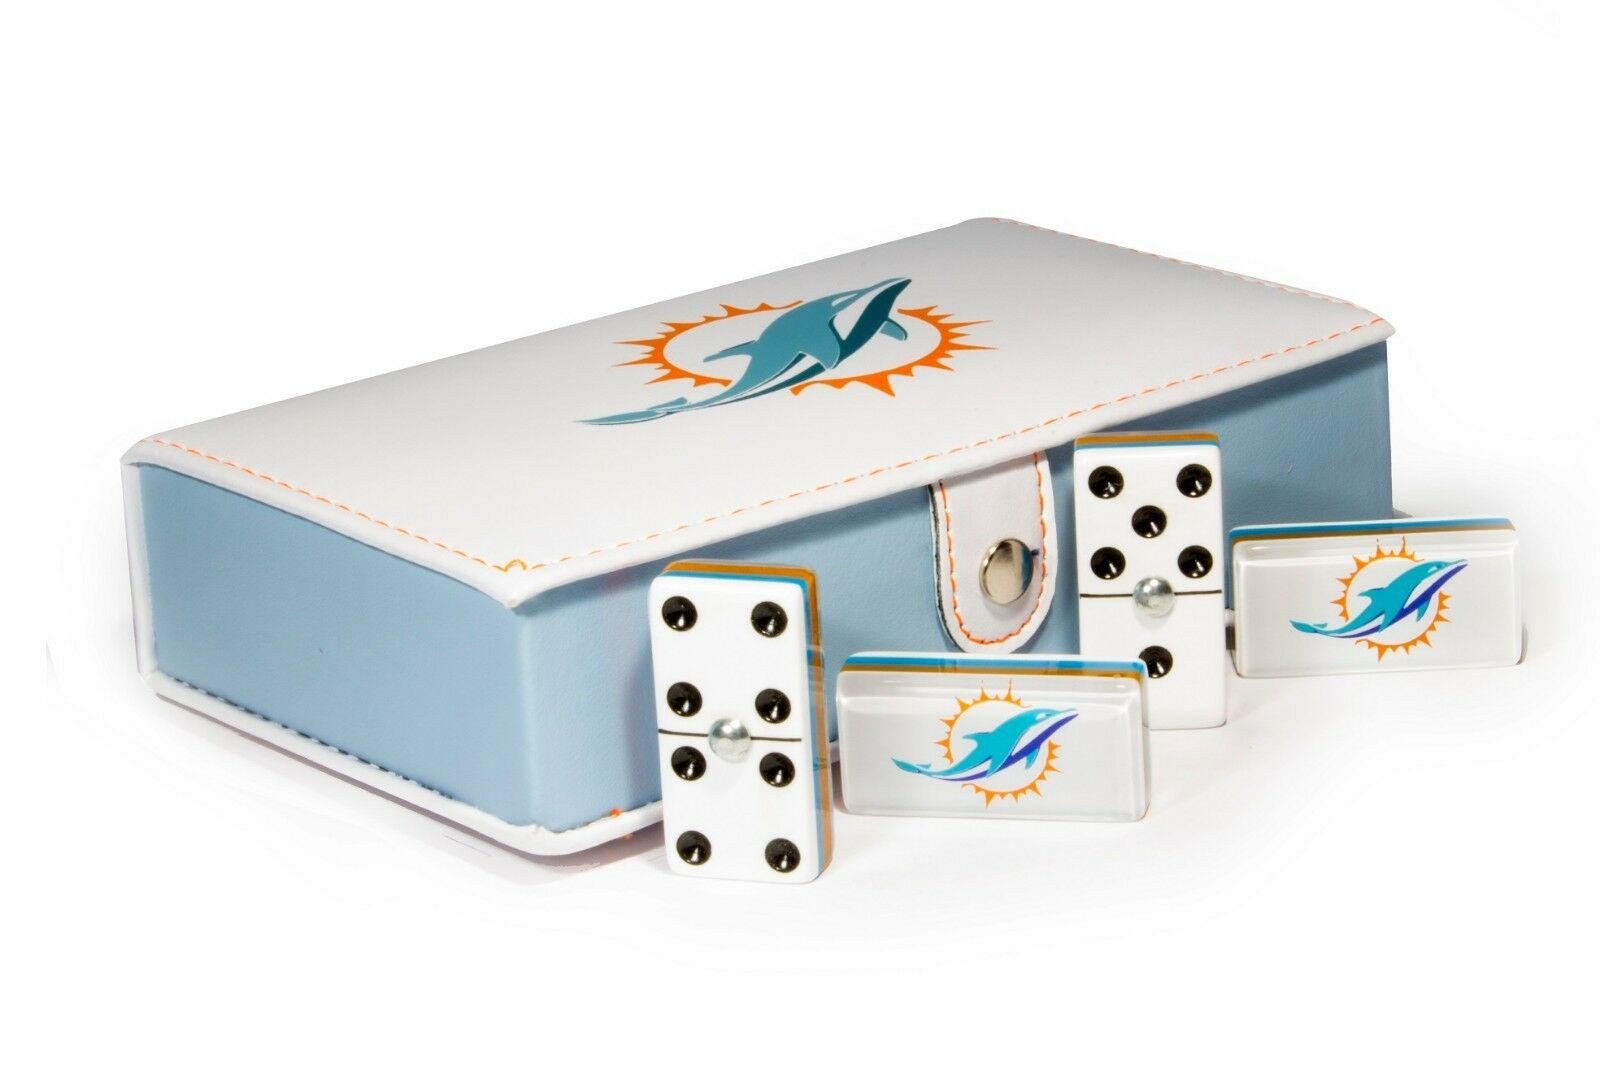 Miami Dolphins Domino  100% Acrylic, Faux Leather Case  Miglior prezzo